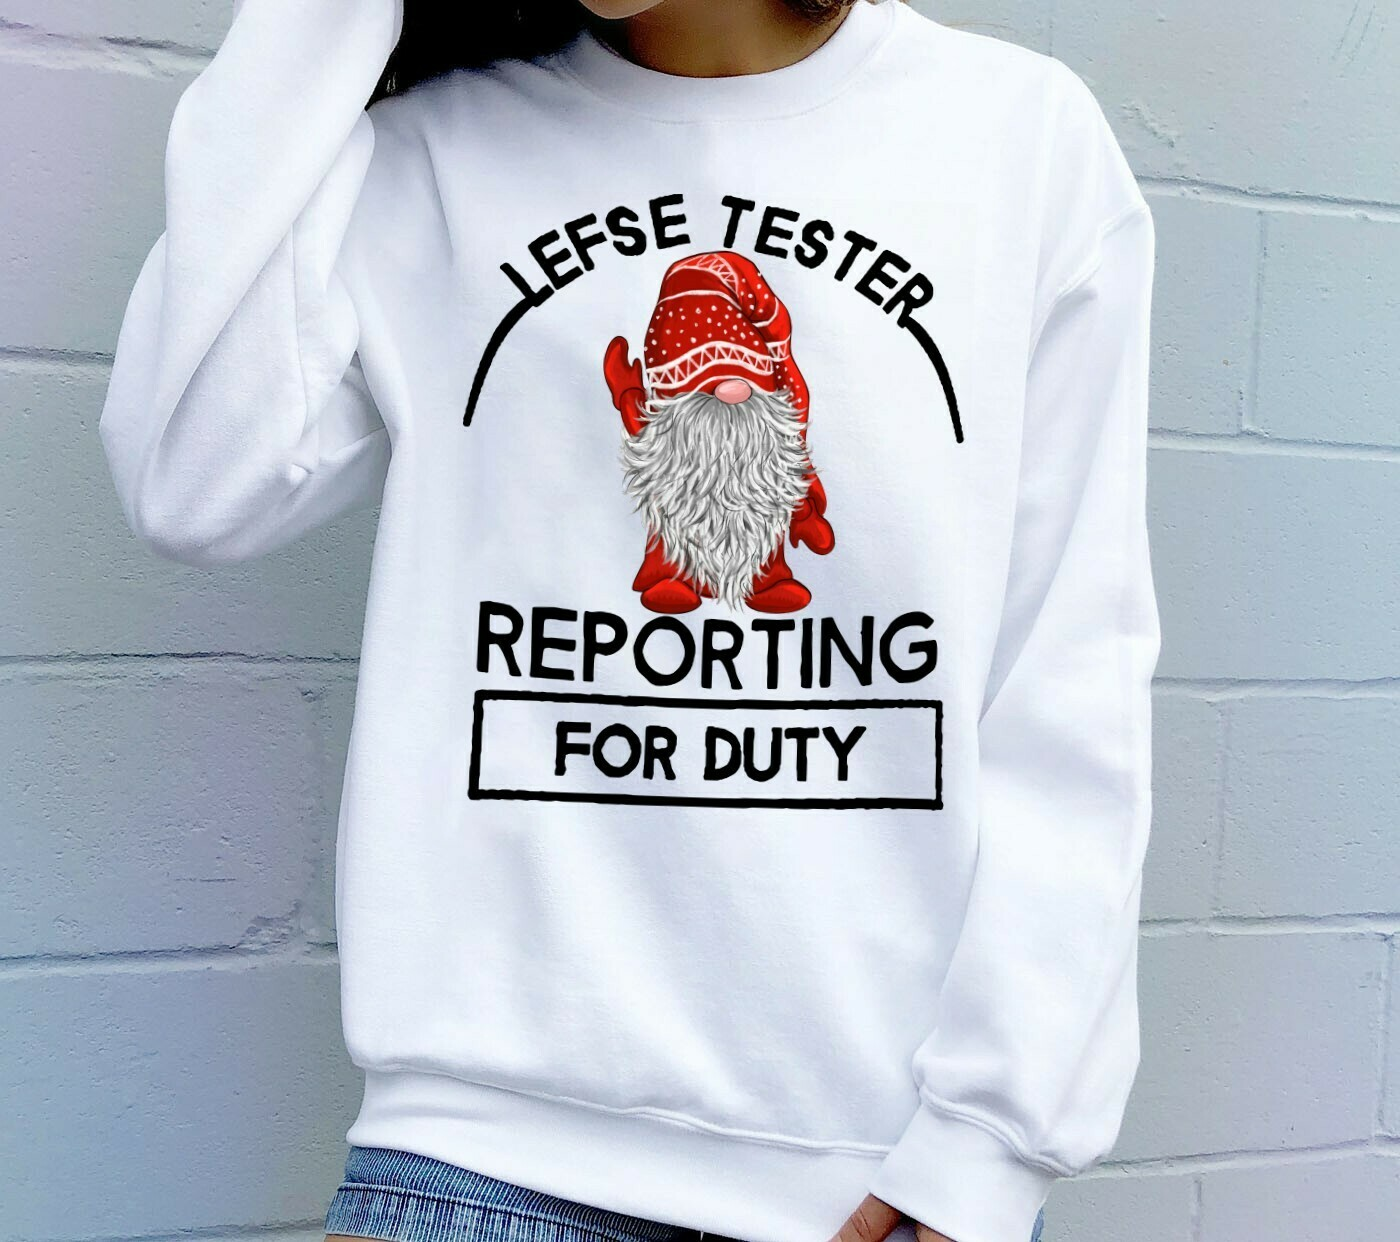 Lefse Tester Reporting For Duty Nordic Purple Gnome Christmas,Scandinavian Gnome Tomte Tee T shirt Long Sleeve Sweatshirt Hoodie Jolly Family Gifts